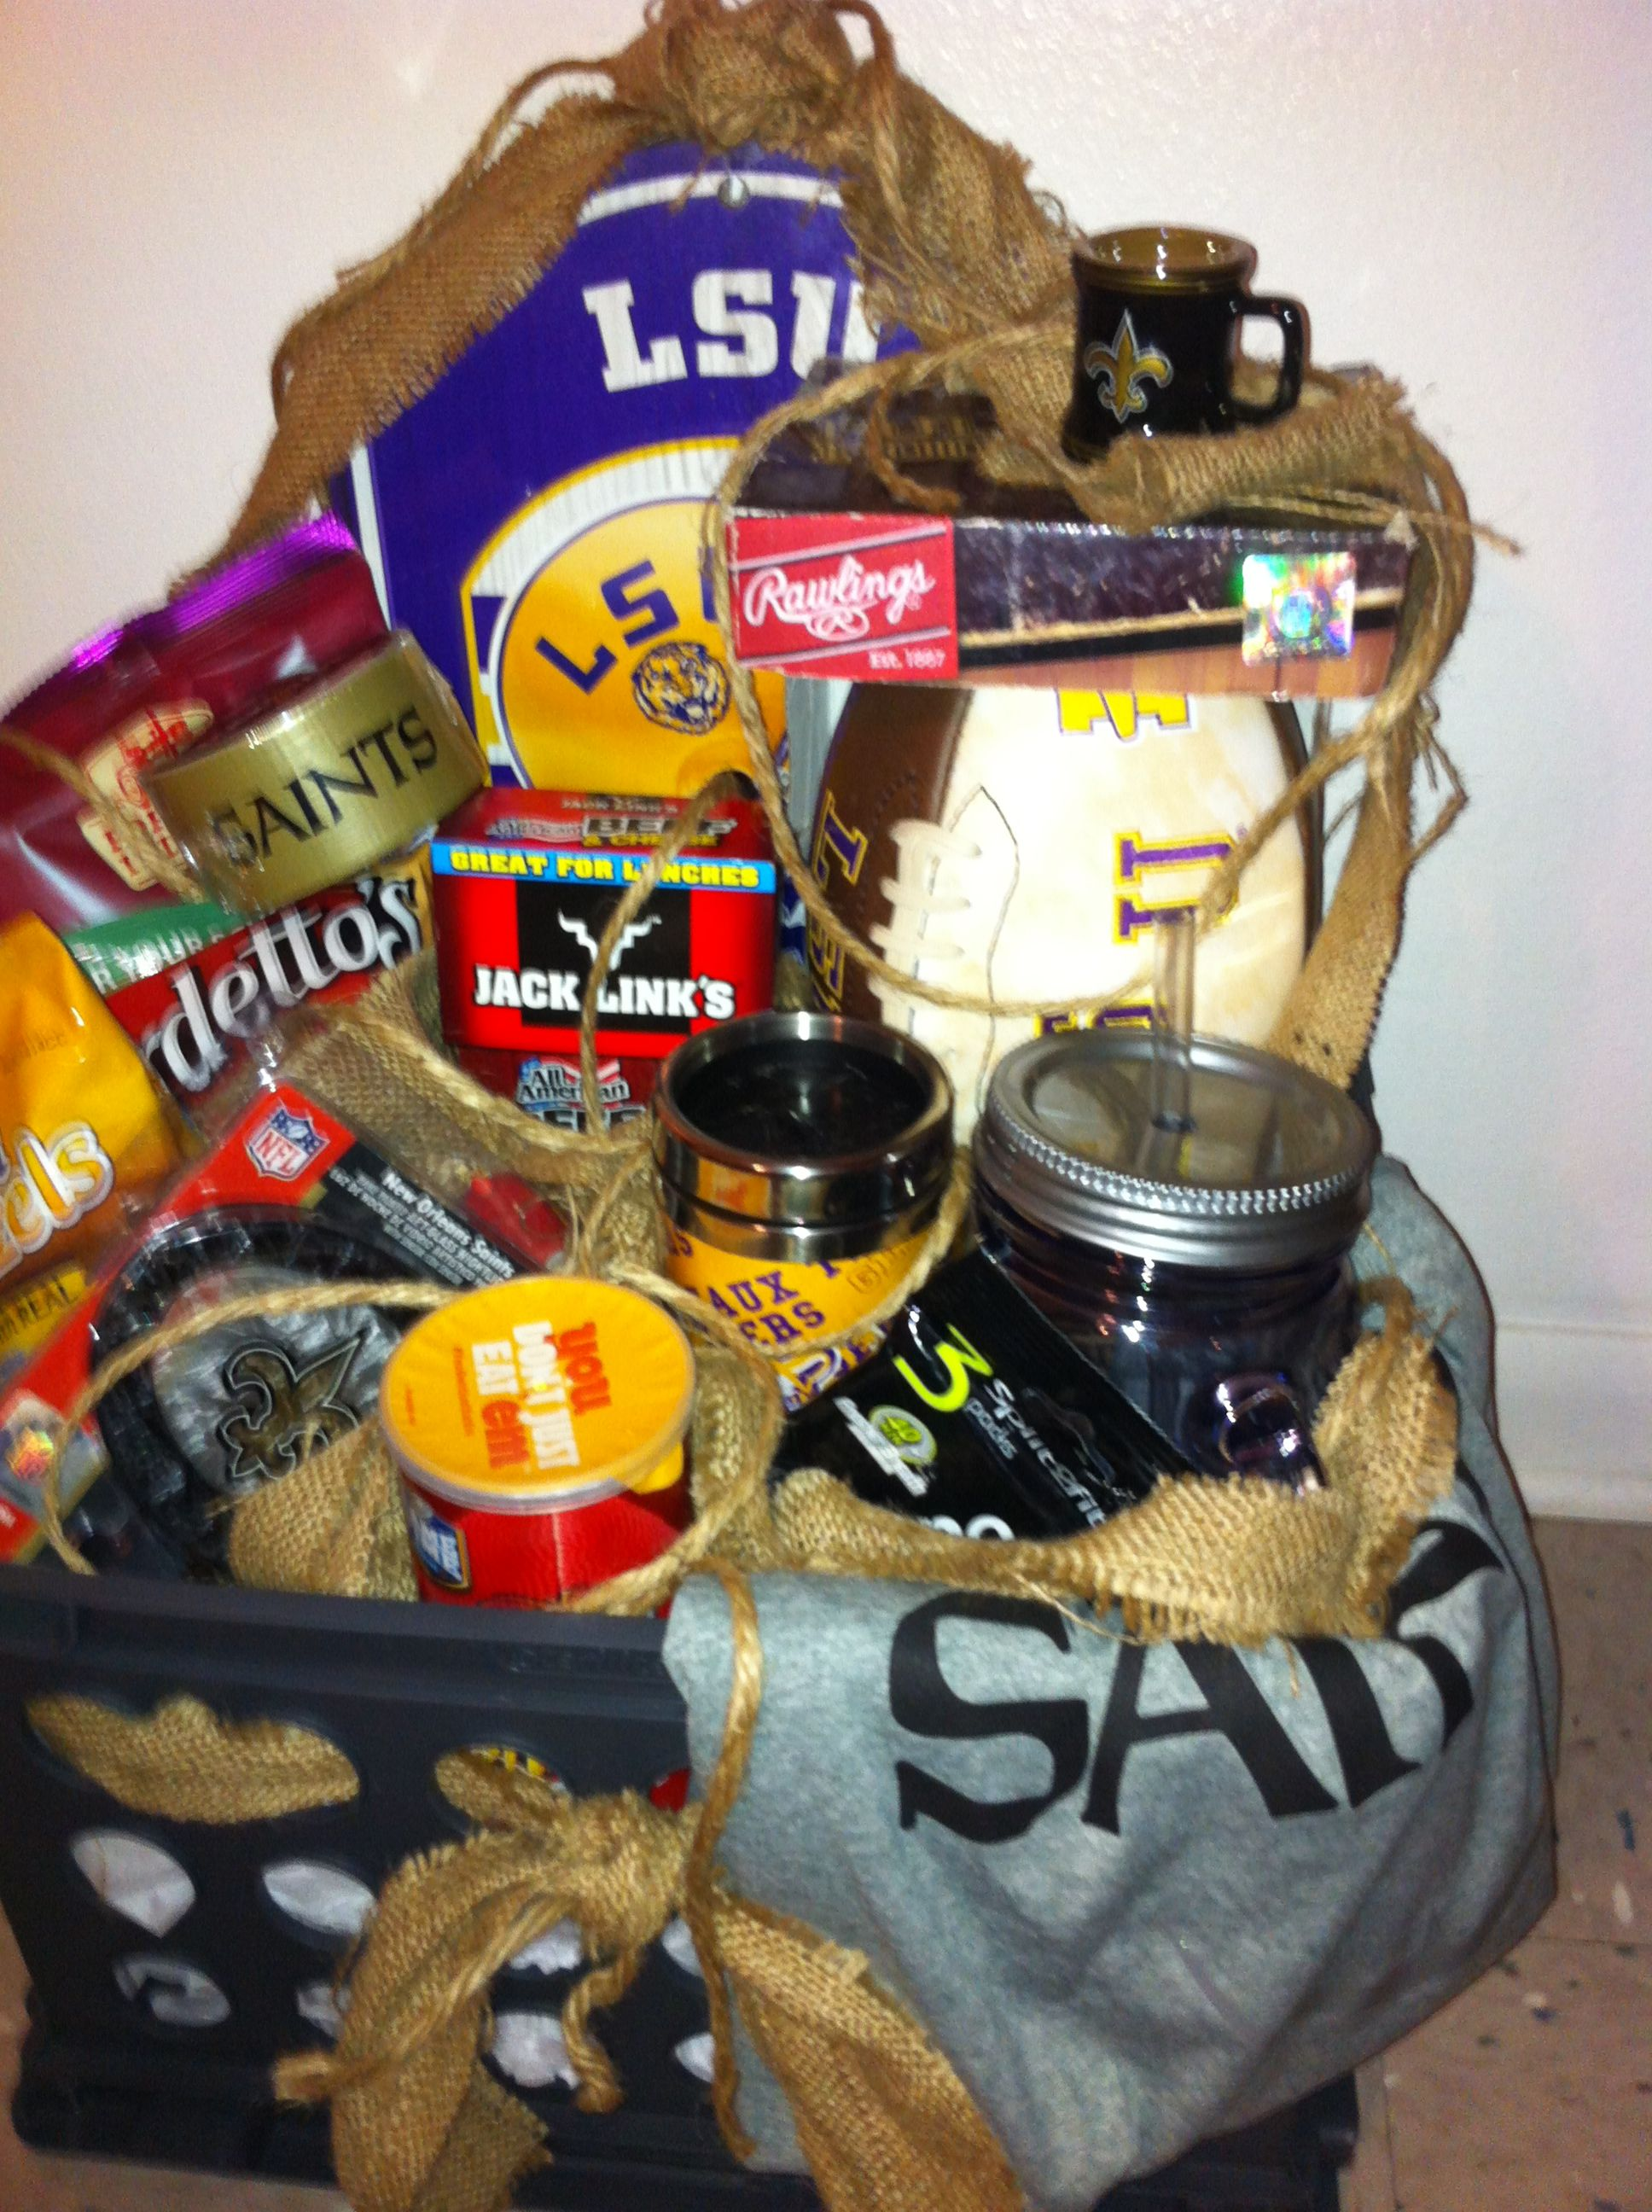 This Basket Was Mixed With Saints Lsu Items And Guy Snacks Lsu Gift Basket Snacks